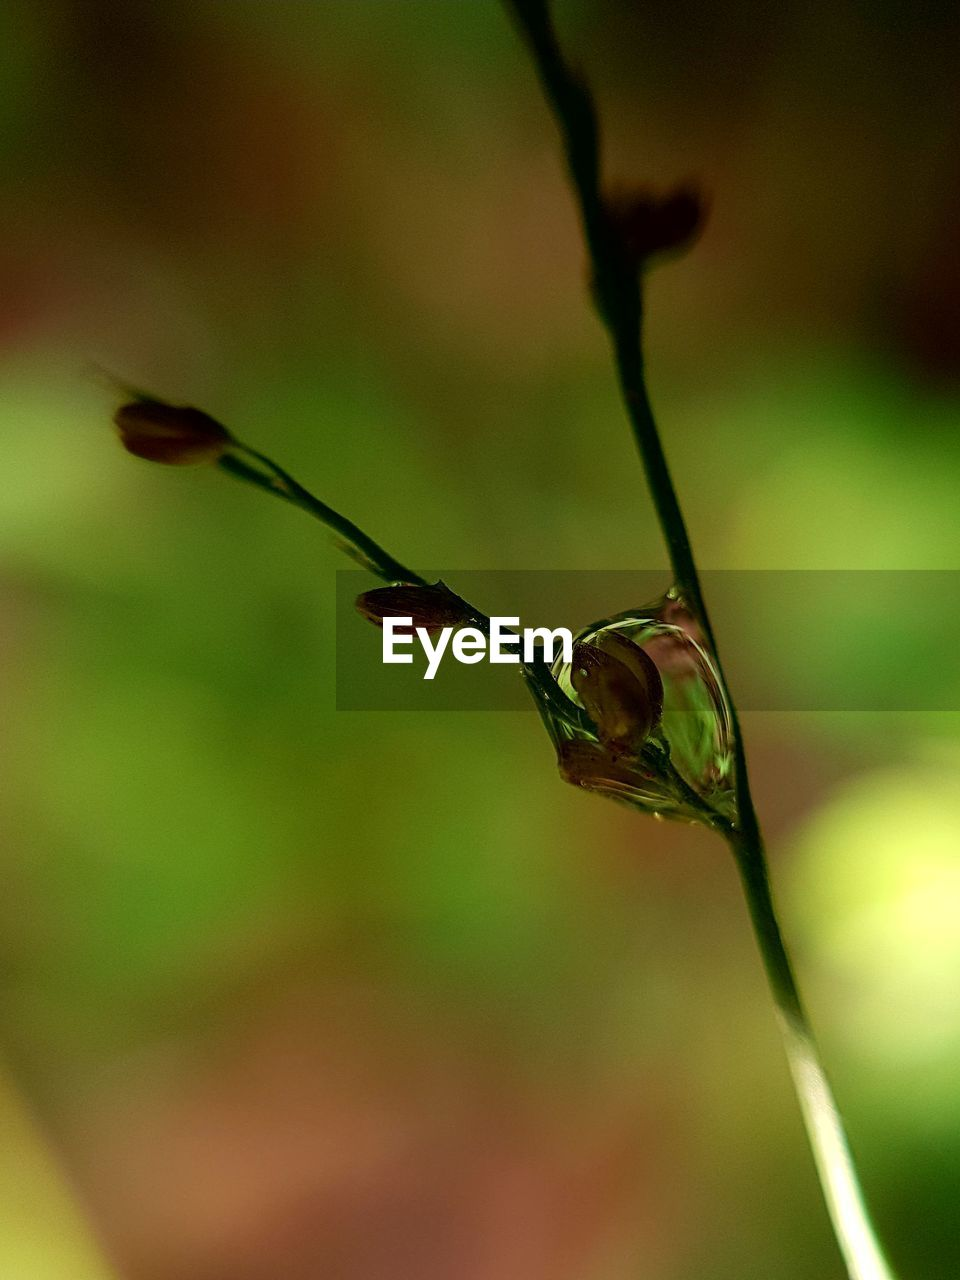 plant, focus on foreground, close-up, no people, nature, growth, beauty in nature, plant stem, twig, animal wildlife, day, outdoors, selective focus, animals in the wild, animal themes, one animal, animal, flower, freshness, fragility